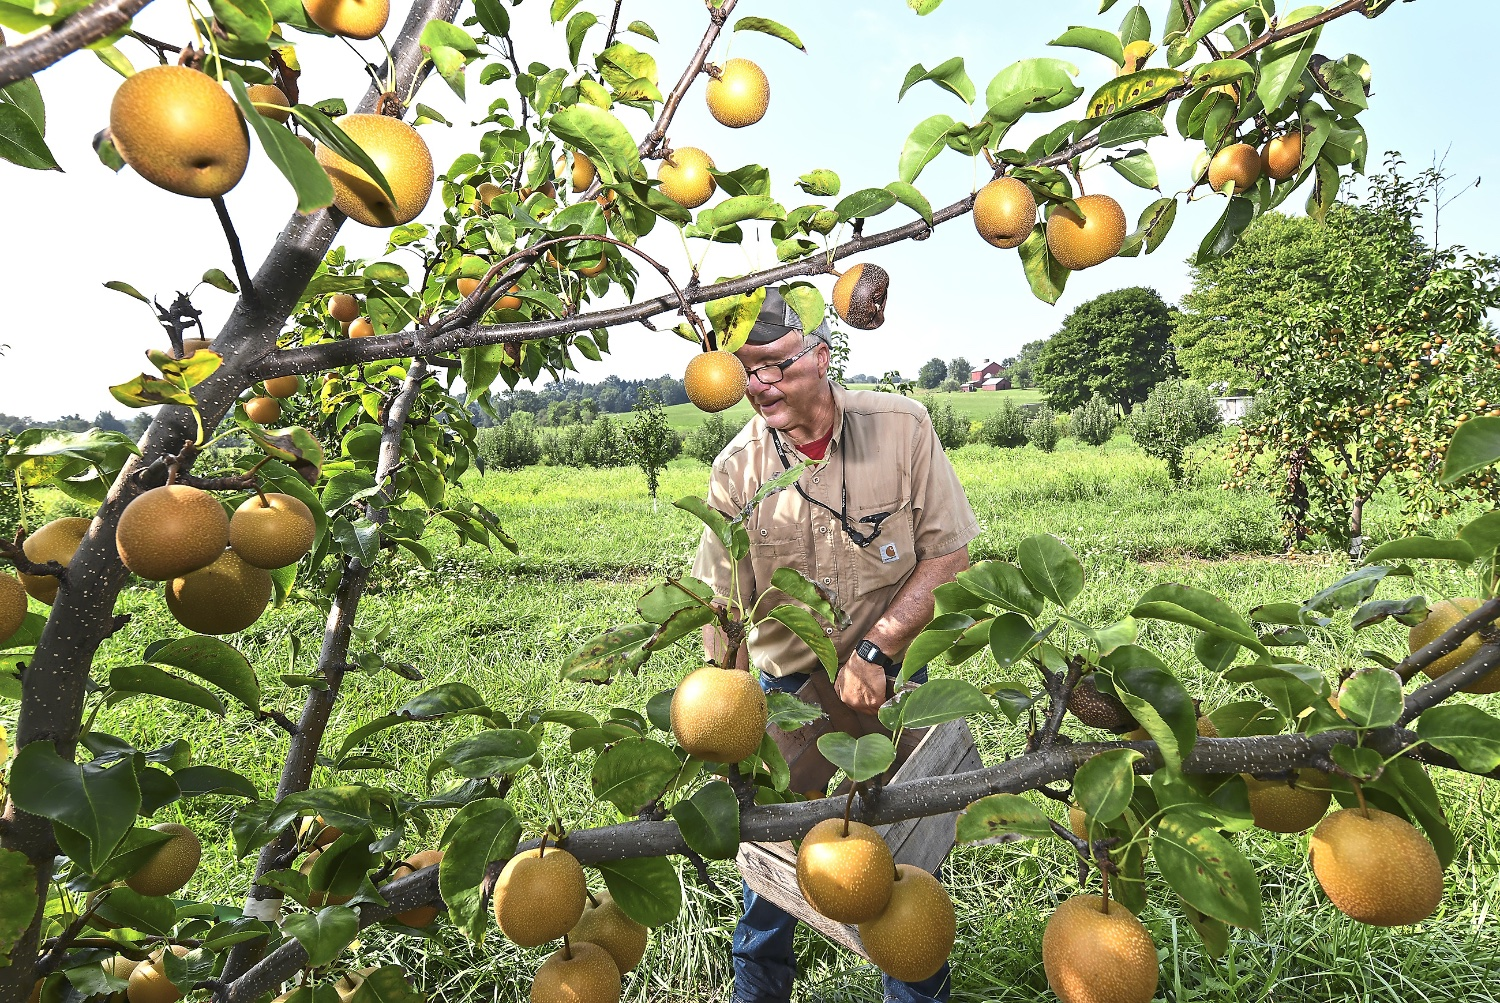 Aaron Sturges, owner of Sturges Orchards, pick Asian pears on his farm Monday Aug. 27, 2018, in Fombell, Beaver County. (Nate Guidry/Post-Gazette)